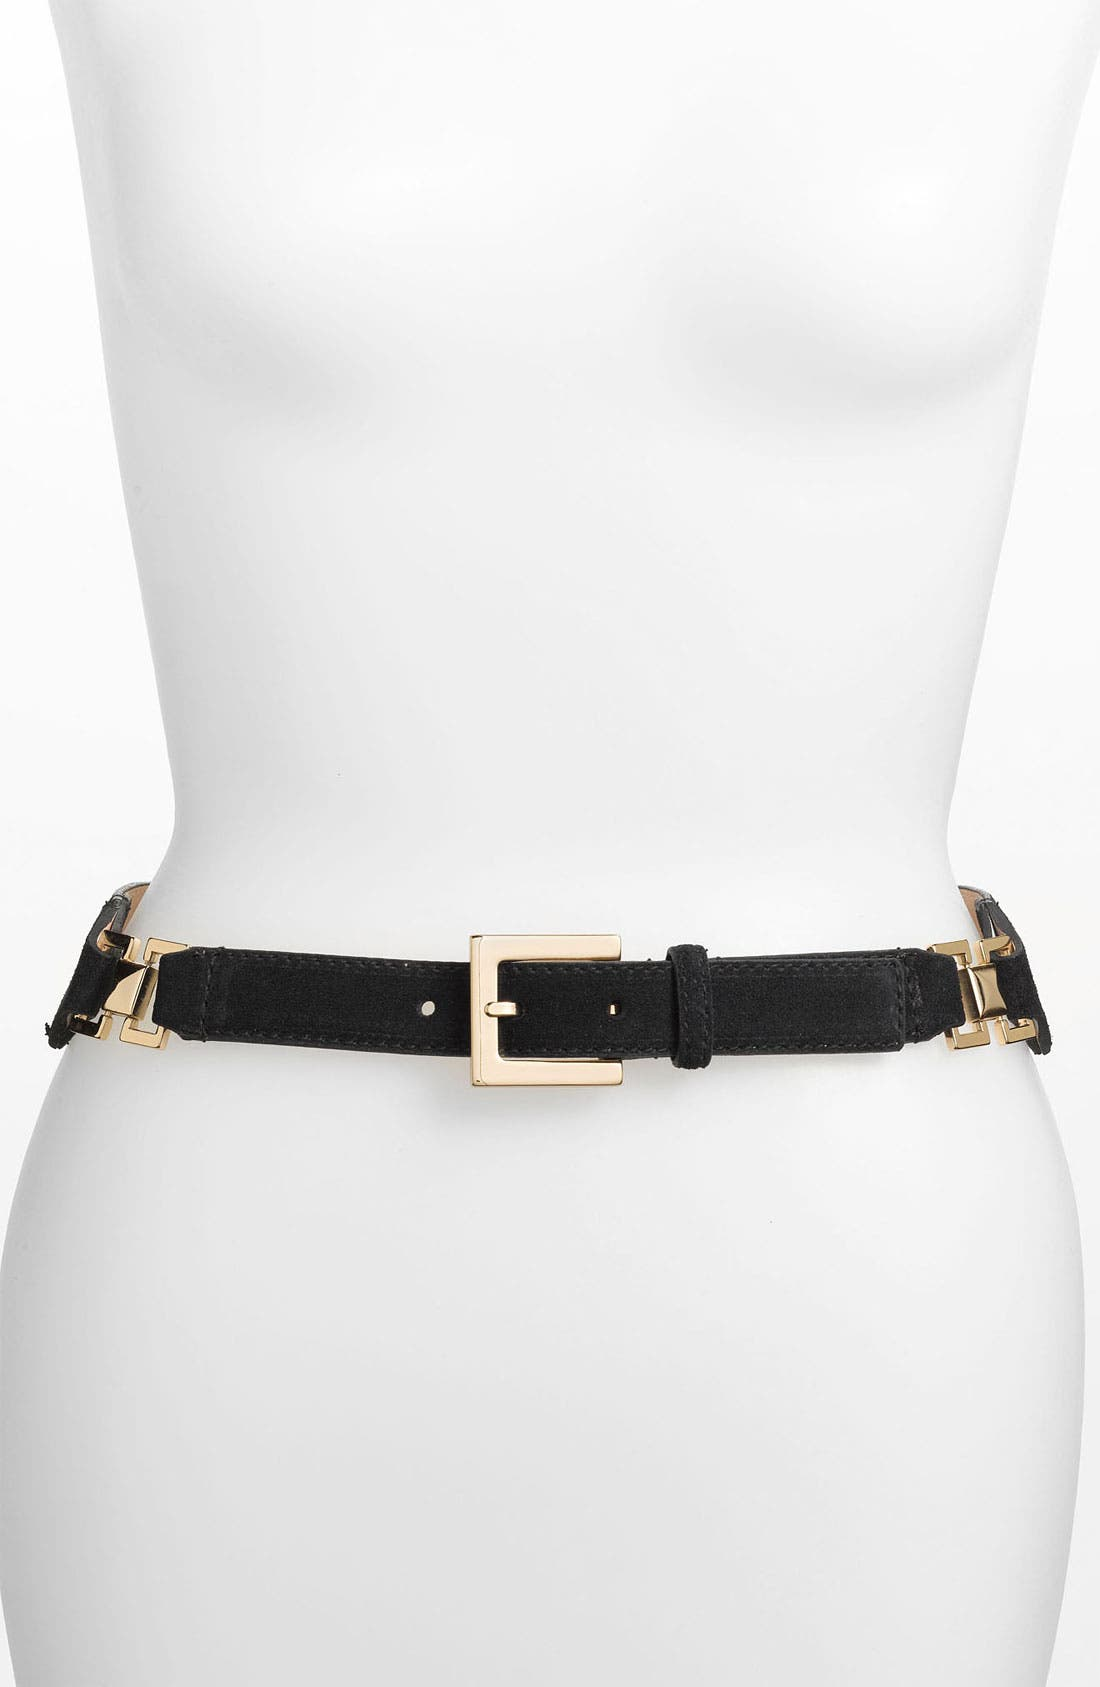 Main Image - Vince Camuto Taper Front Suede Panel Belt